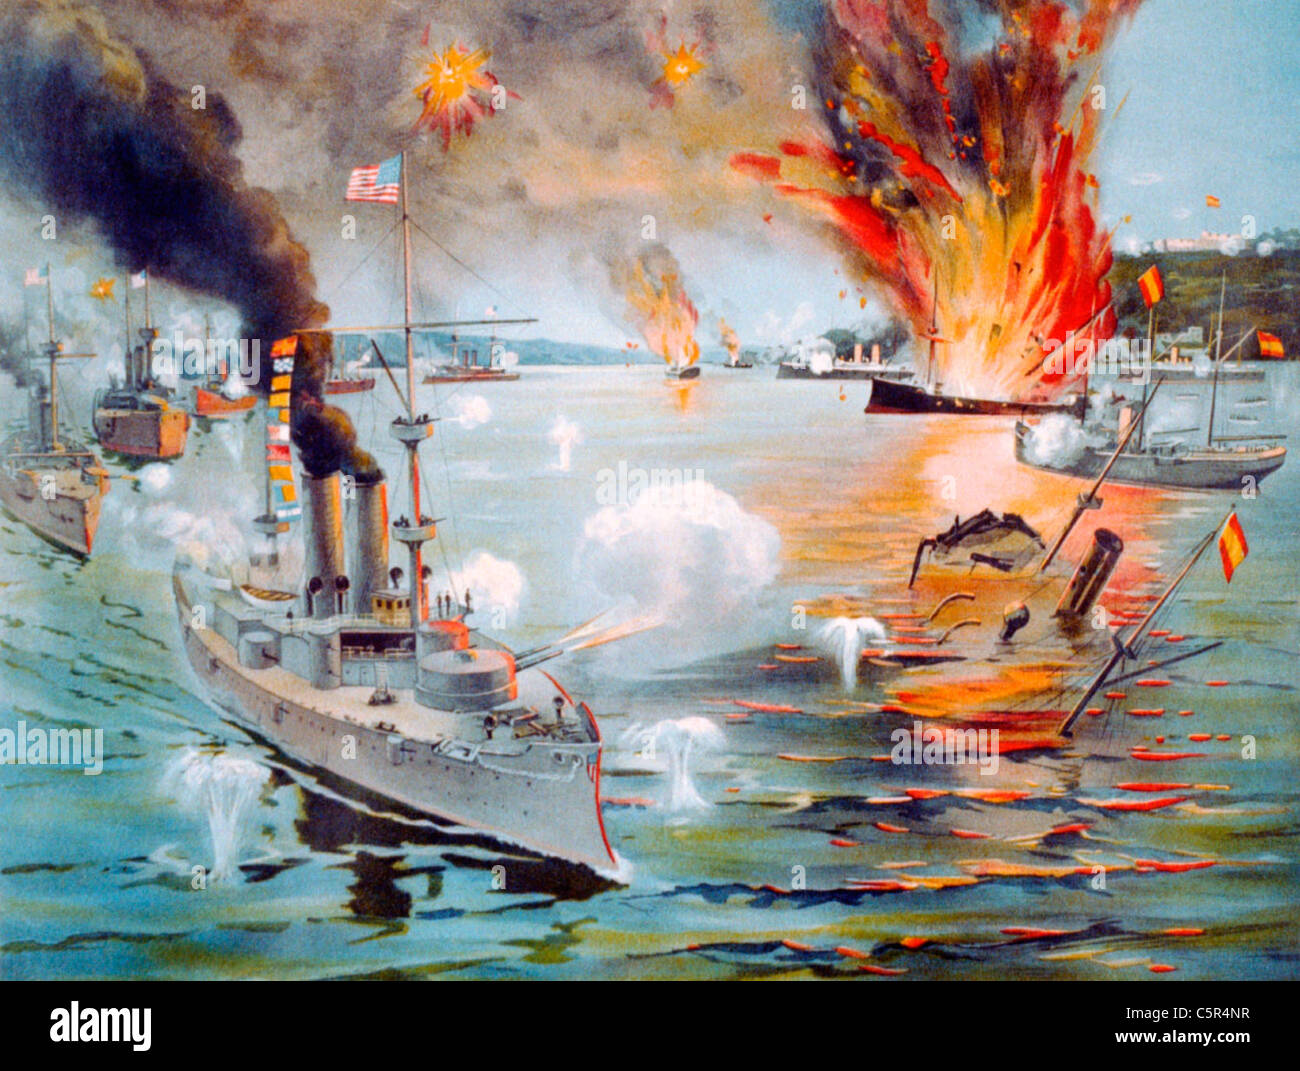 the background of the spanish american war of 1898 The spanish american war: 1898 the spanish-american war, like the civil war  a third of a century earlier, had a high incidence of deaths from disease.